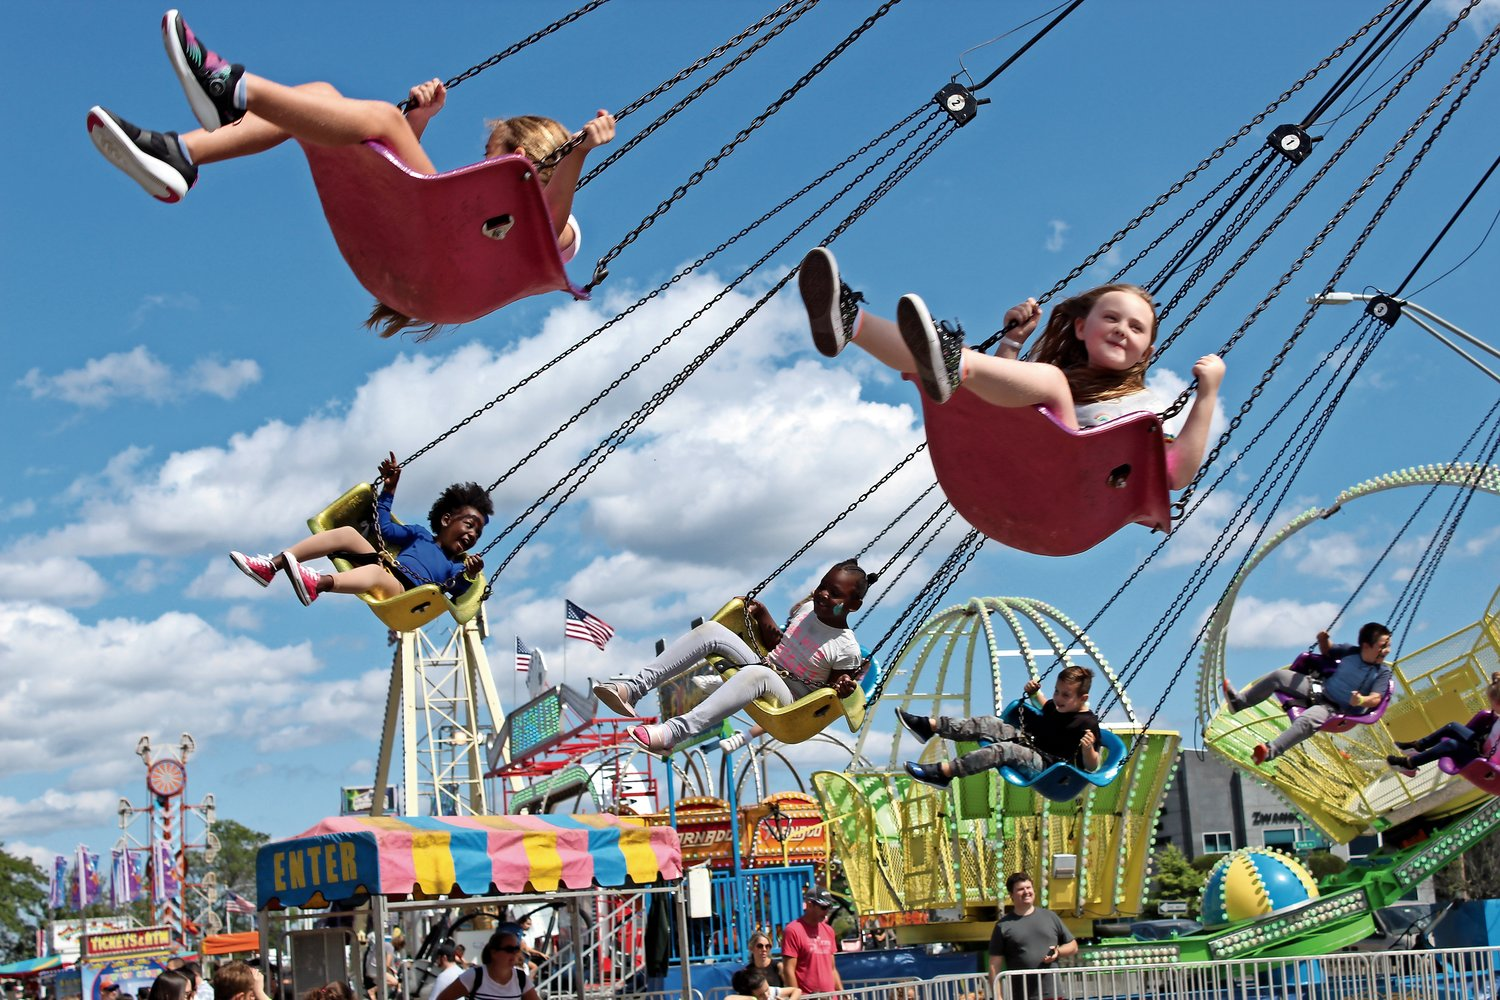 The rides are only part of the fun at the annual Merrick Fall Festival, hosted by the Merrick Chamber of Commerce, which was canceled last year. This September, both the Fall Festival and Bellmore's Street Festival will be back on.